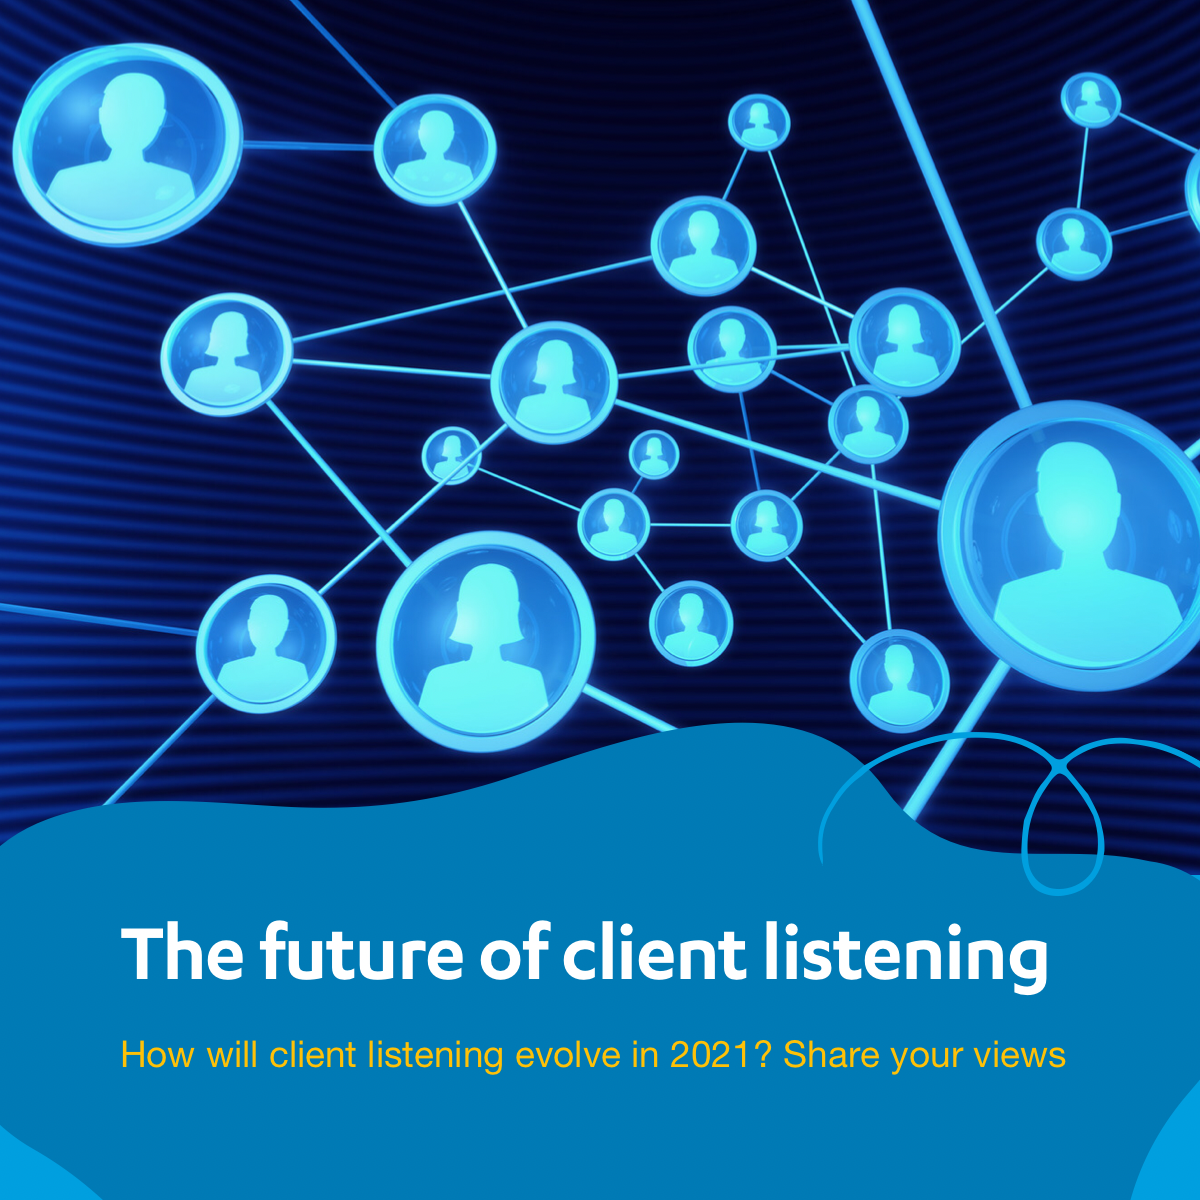 What's the future of client listening?